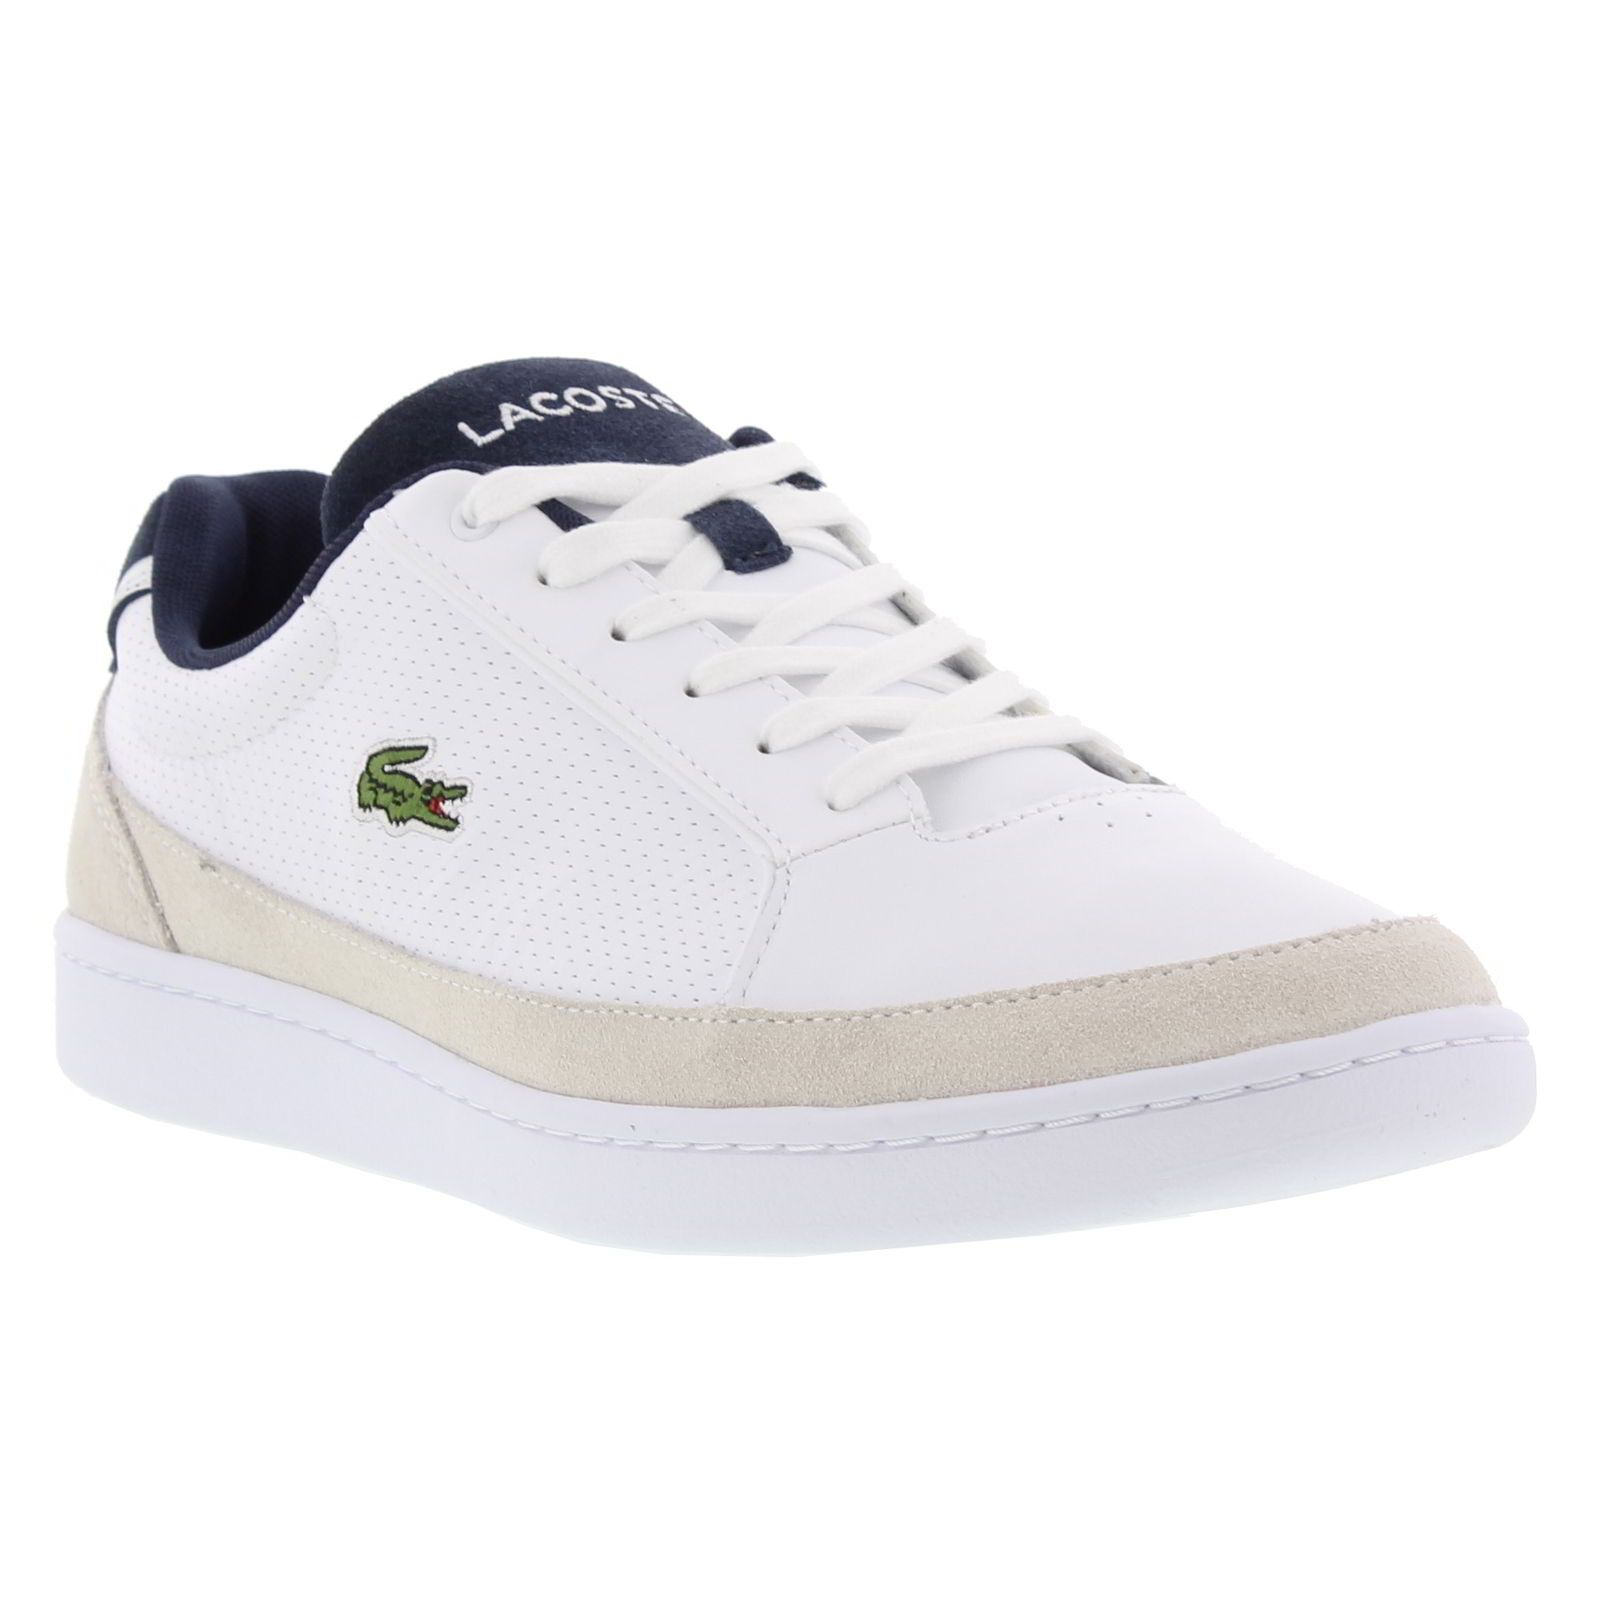 ee2a8bec0446 Details about Lacoste Setplay 117 1 SPM Mens Leather Trainers Size 8-11